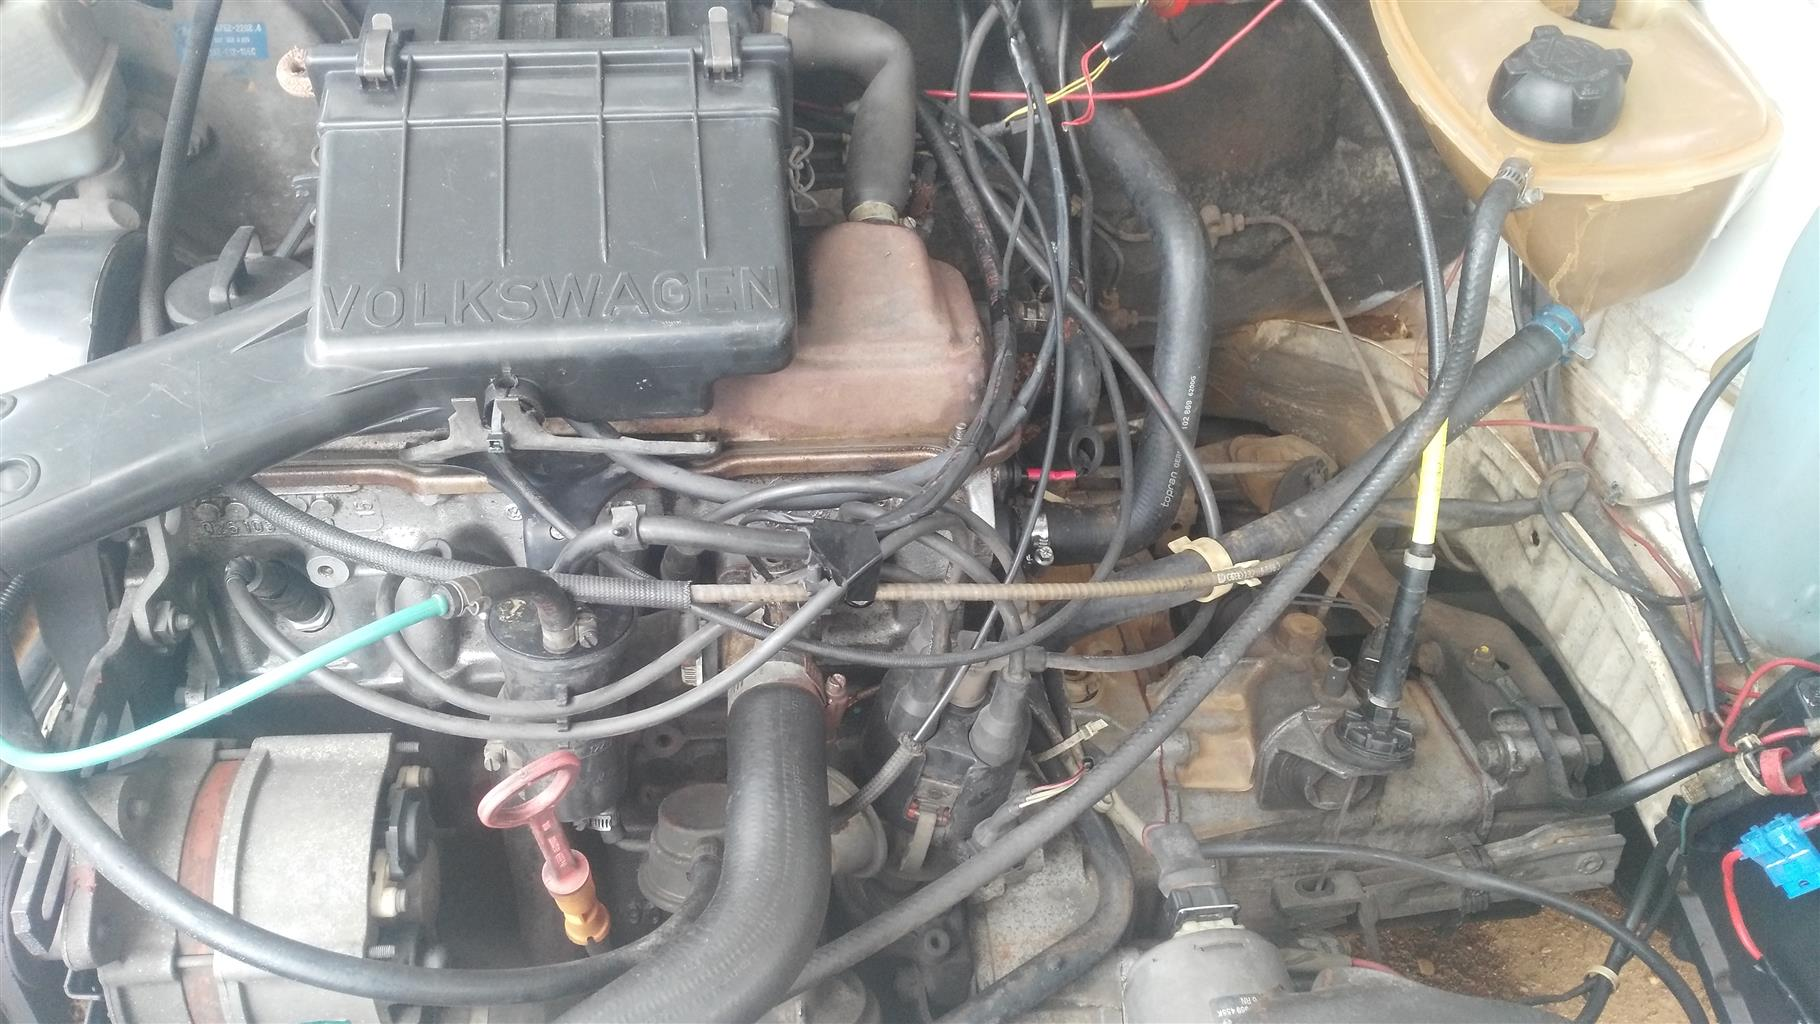 VW jetta MK2 imaculate condition